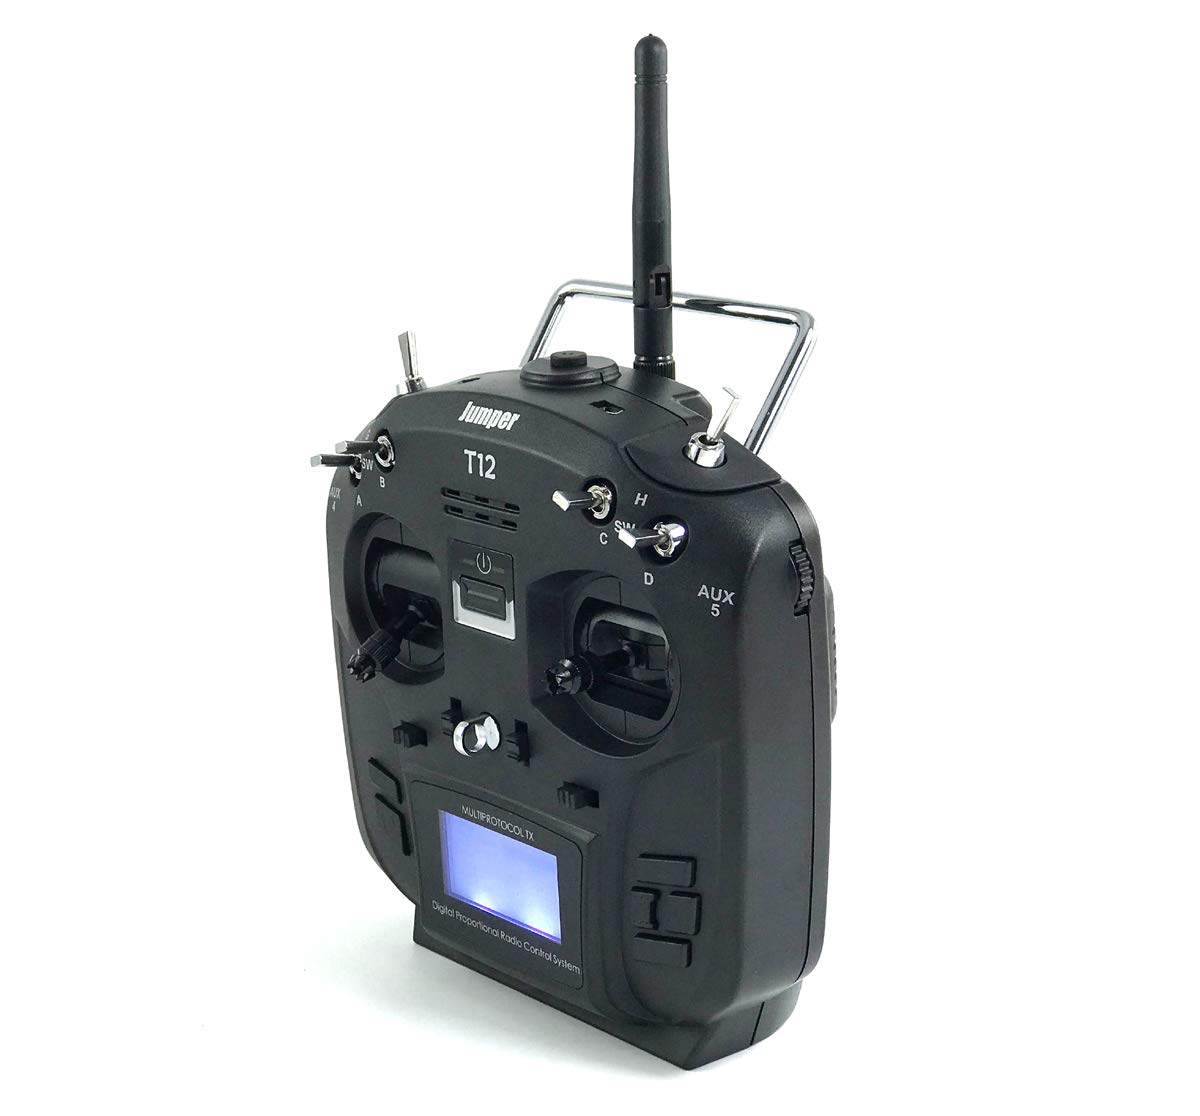 Jumper T12 2 4G 12 Channel OpenTX Multi-Protocol Transmitter Hall Gimbal w/  4-in-1 Module 1 7 inch LCD - Mode 2 (Black)